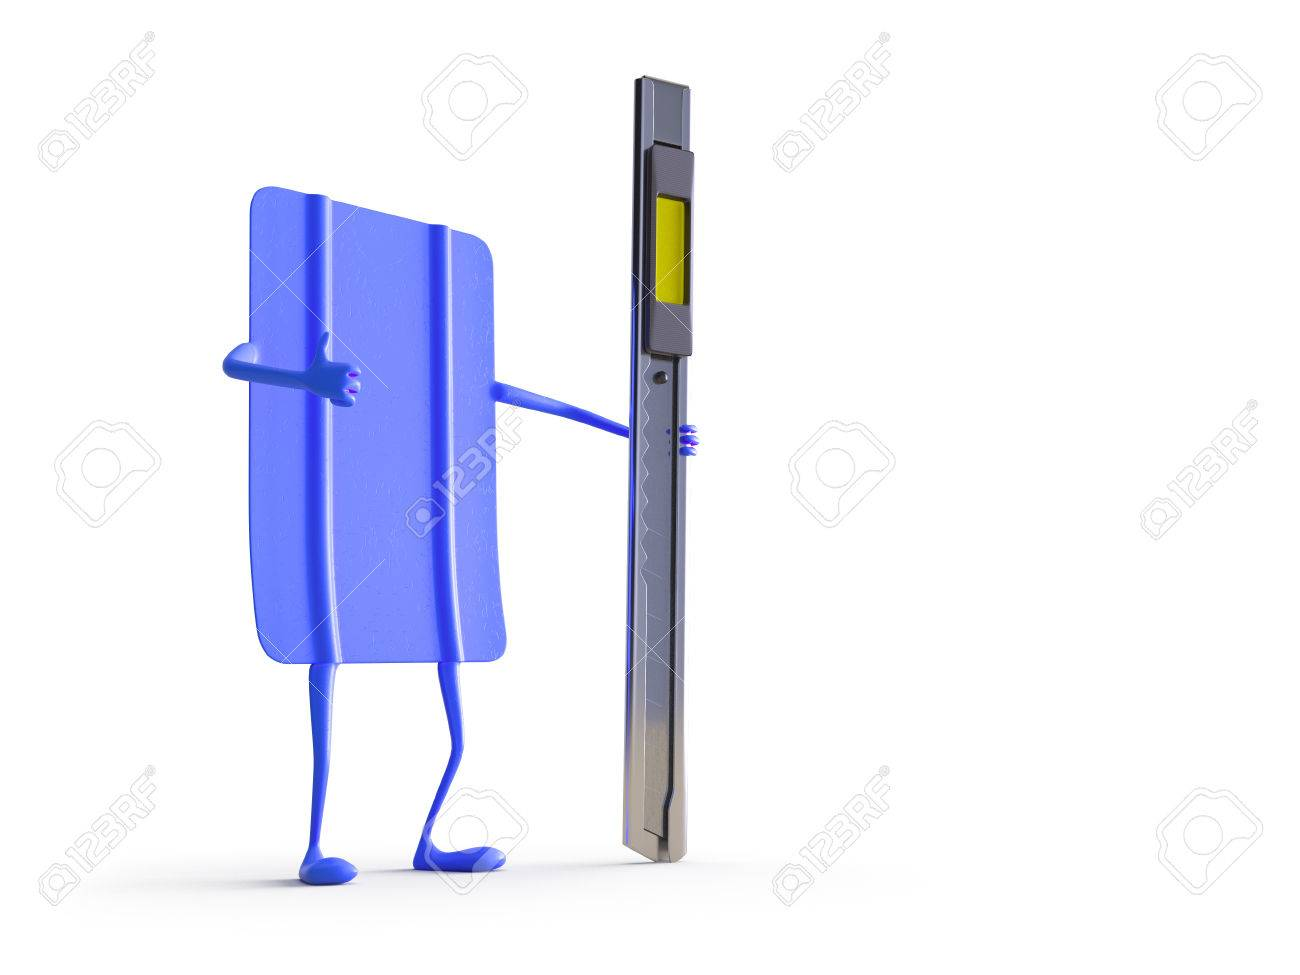 Car wrapping squeegee character. High quality  photo realistic render Standard-Bild - 54359891